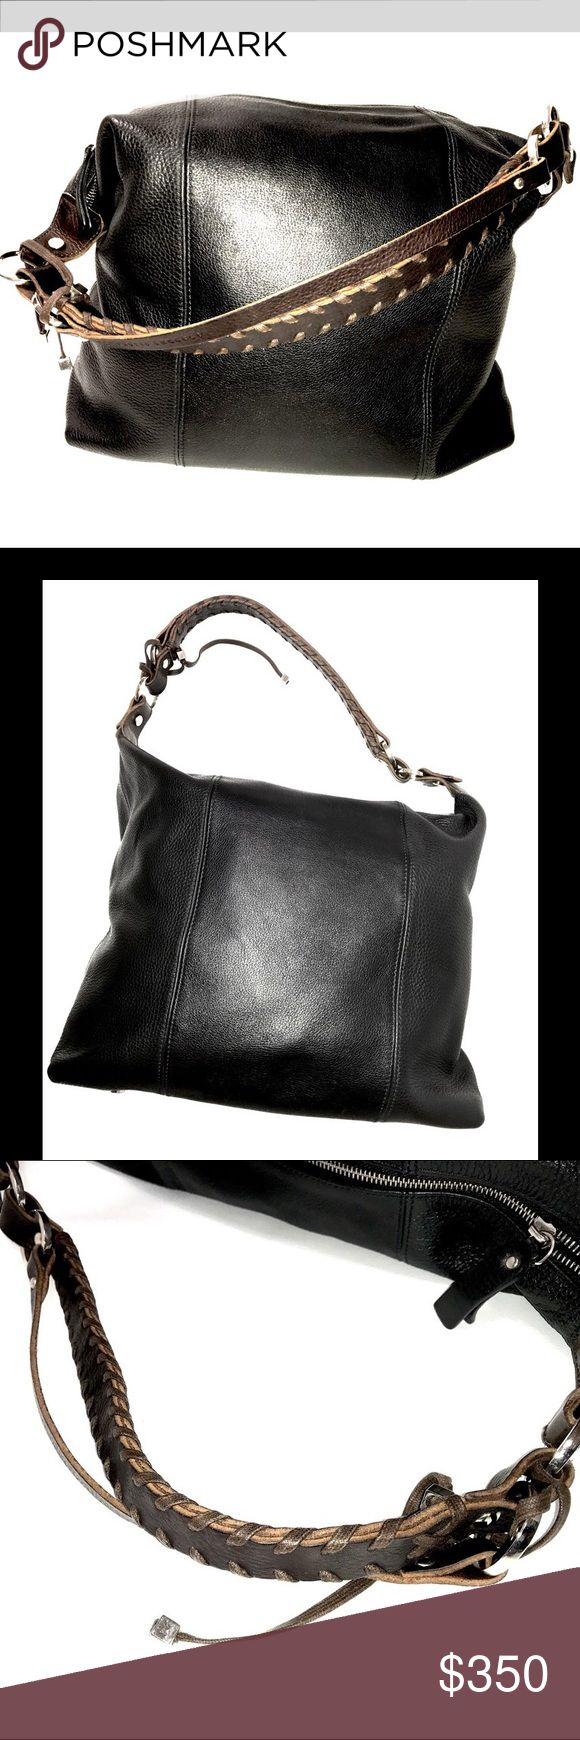 "Pauric Sweeney Purse 195097 Leather Black and Brown Dust Bag Included Rope Handle - Leather 14""W x 11""H x 8"" D 12"" Handle Drop Pauric Sweeney Brand pauric Sweeney Bags Shoulder Bags"